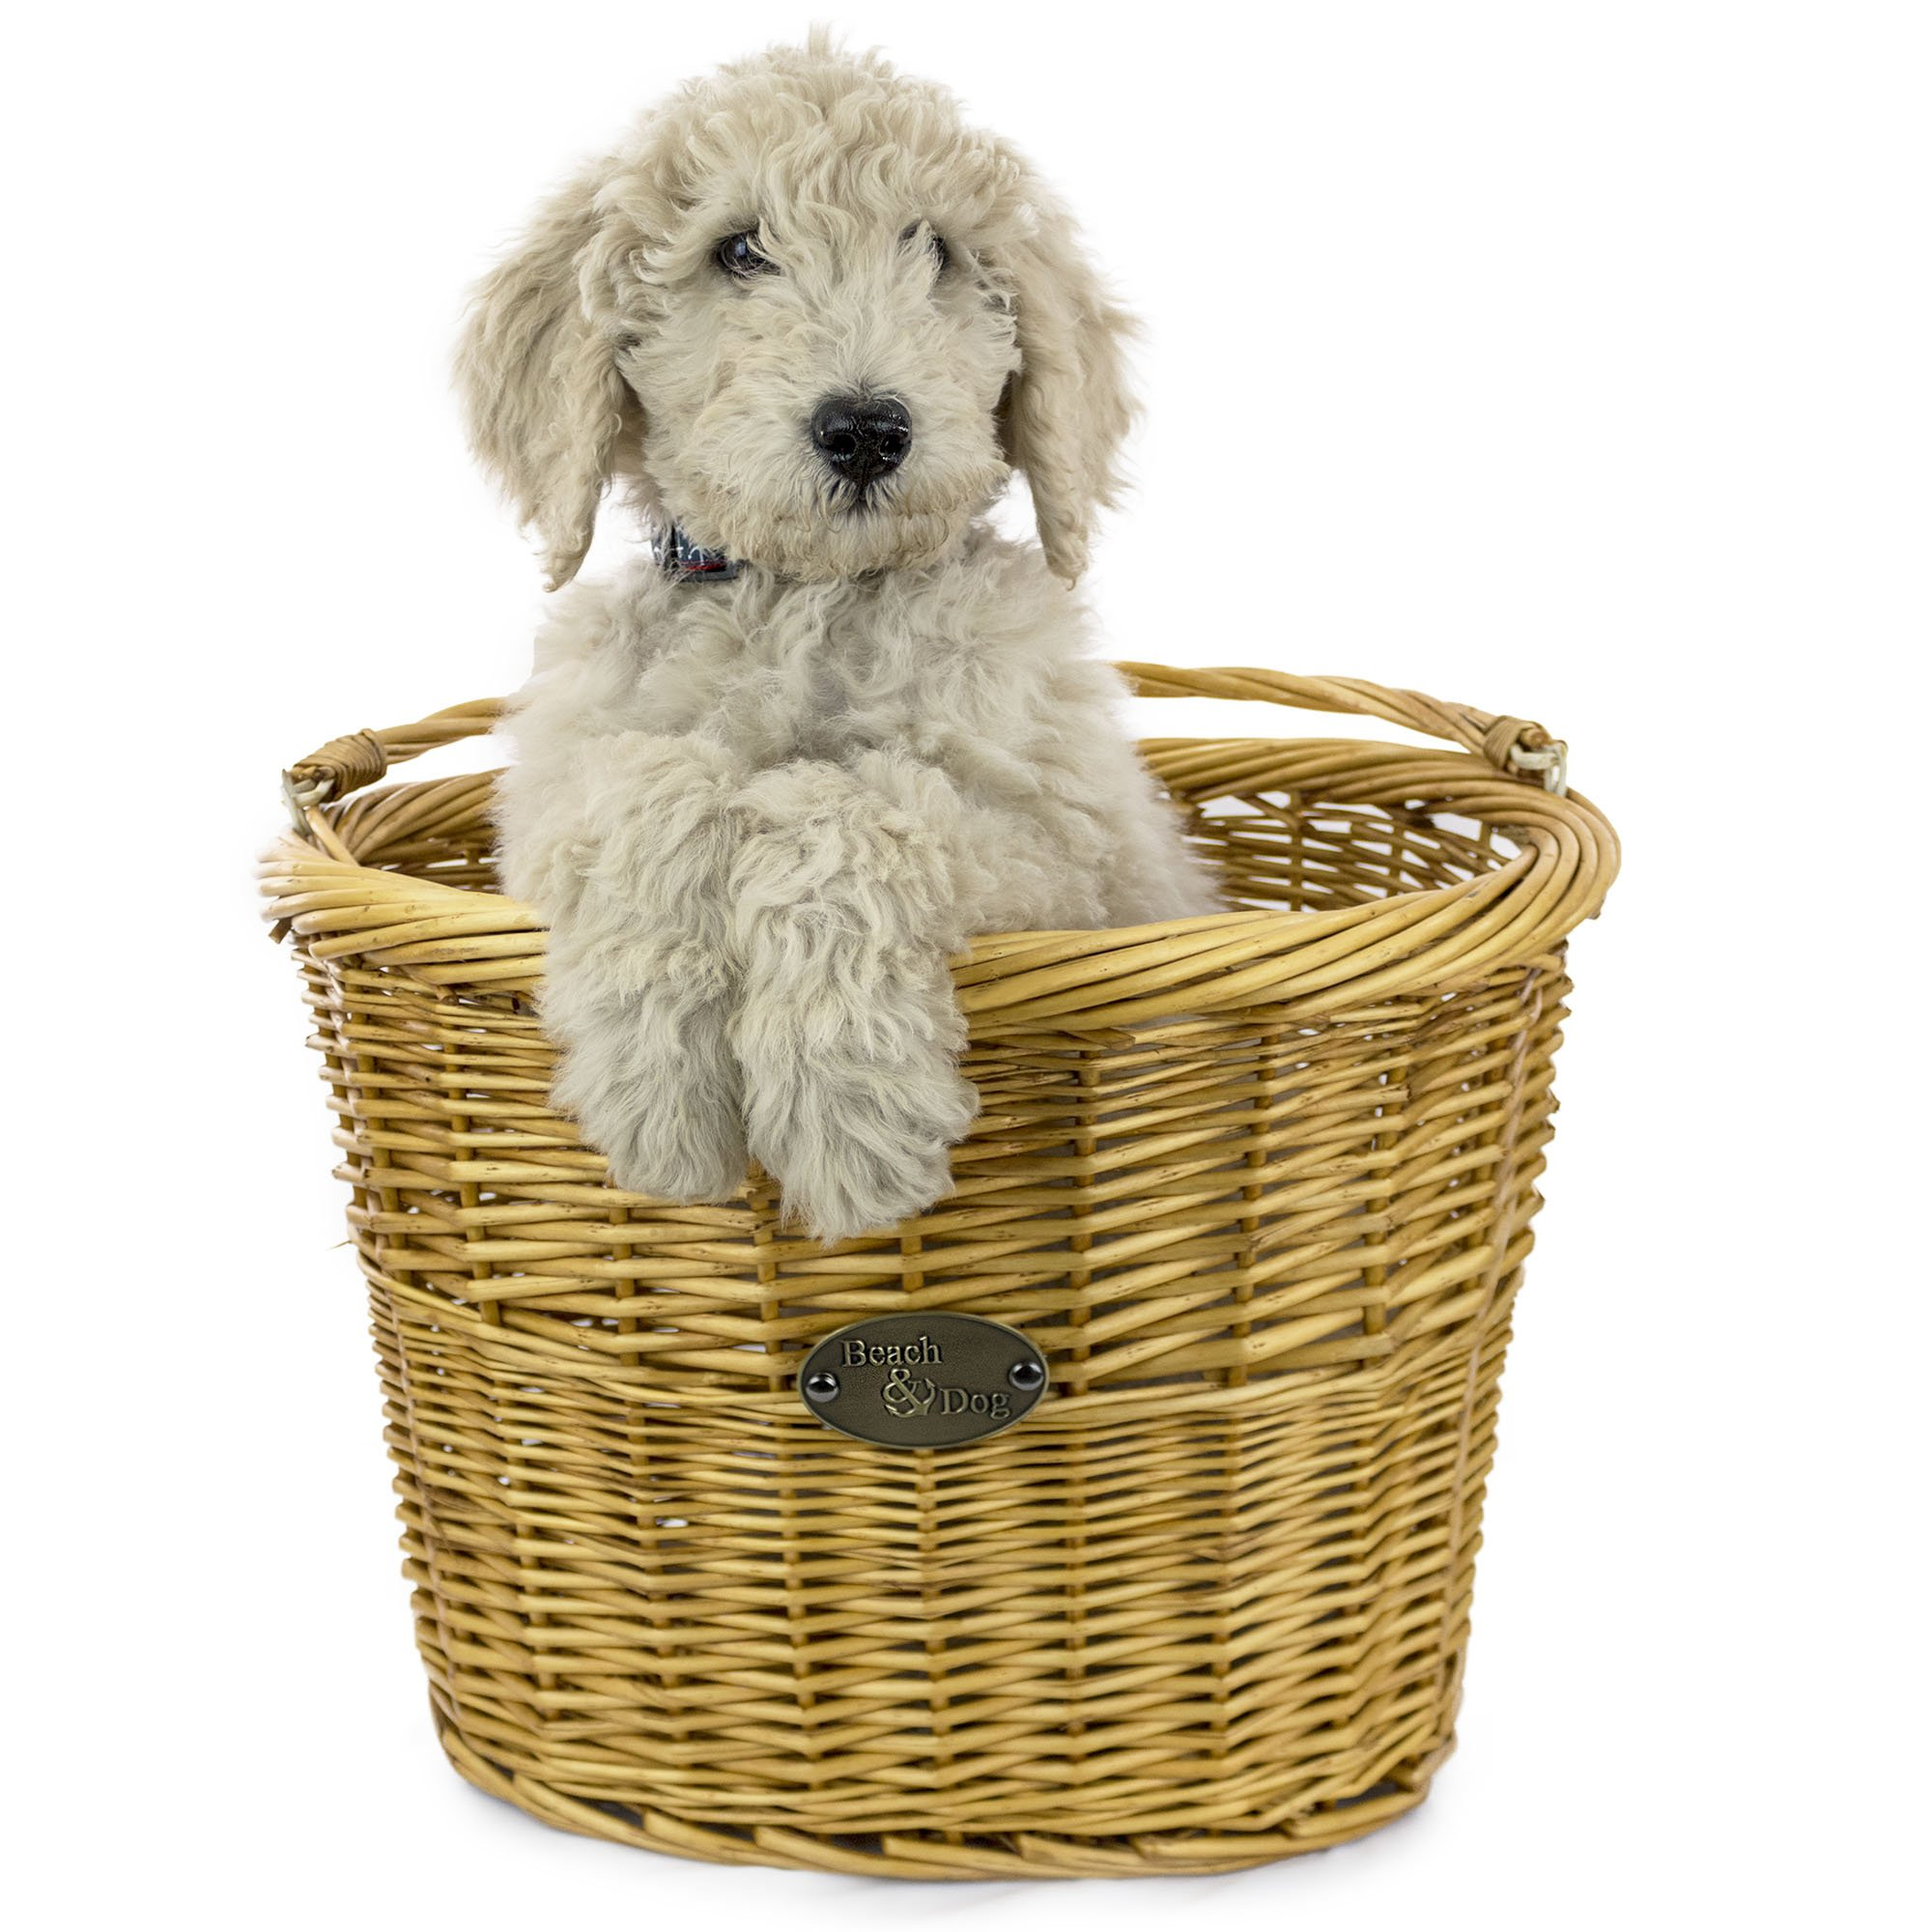 Large Willow Bicycle Basket for Dogs - Hand Crafted By Beach and Dog Co - Handlebar Bracket and Leashes Included (Monterey Large)